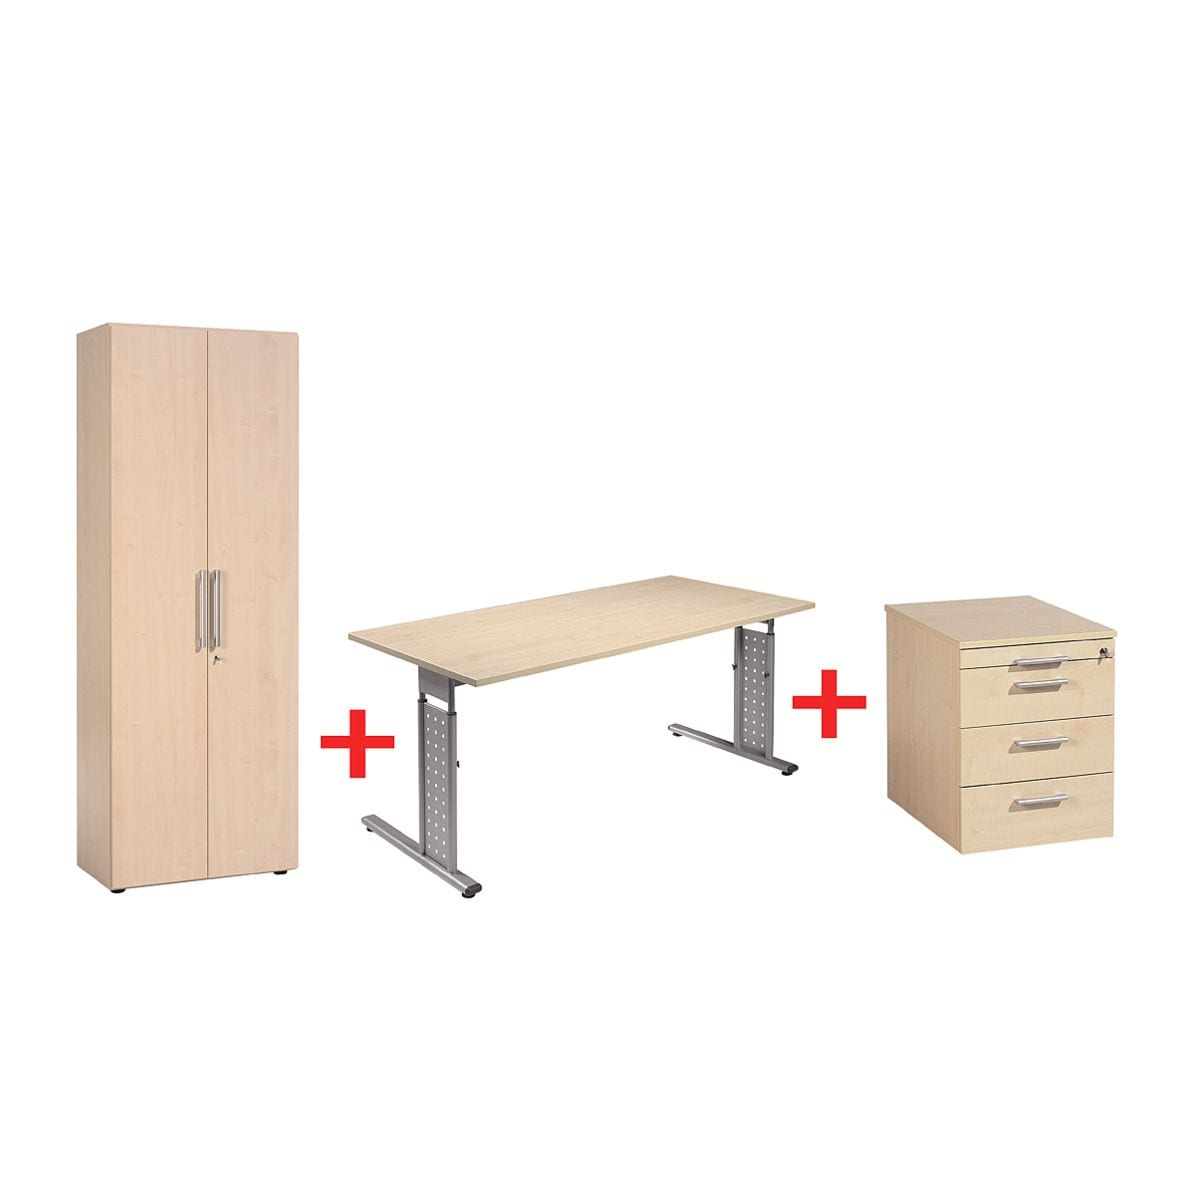 geram bel m bel set new york 3 teilig schreibtisch mit c fu rollcontainer und schrank bei. Black Bedroom Furniture Sets. Home Design Ideas